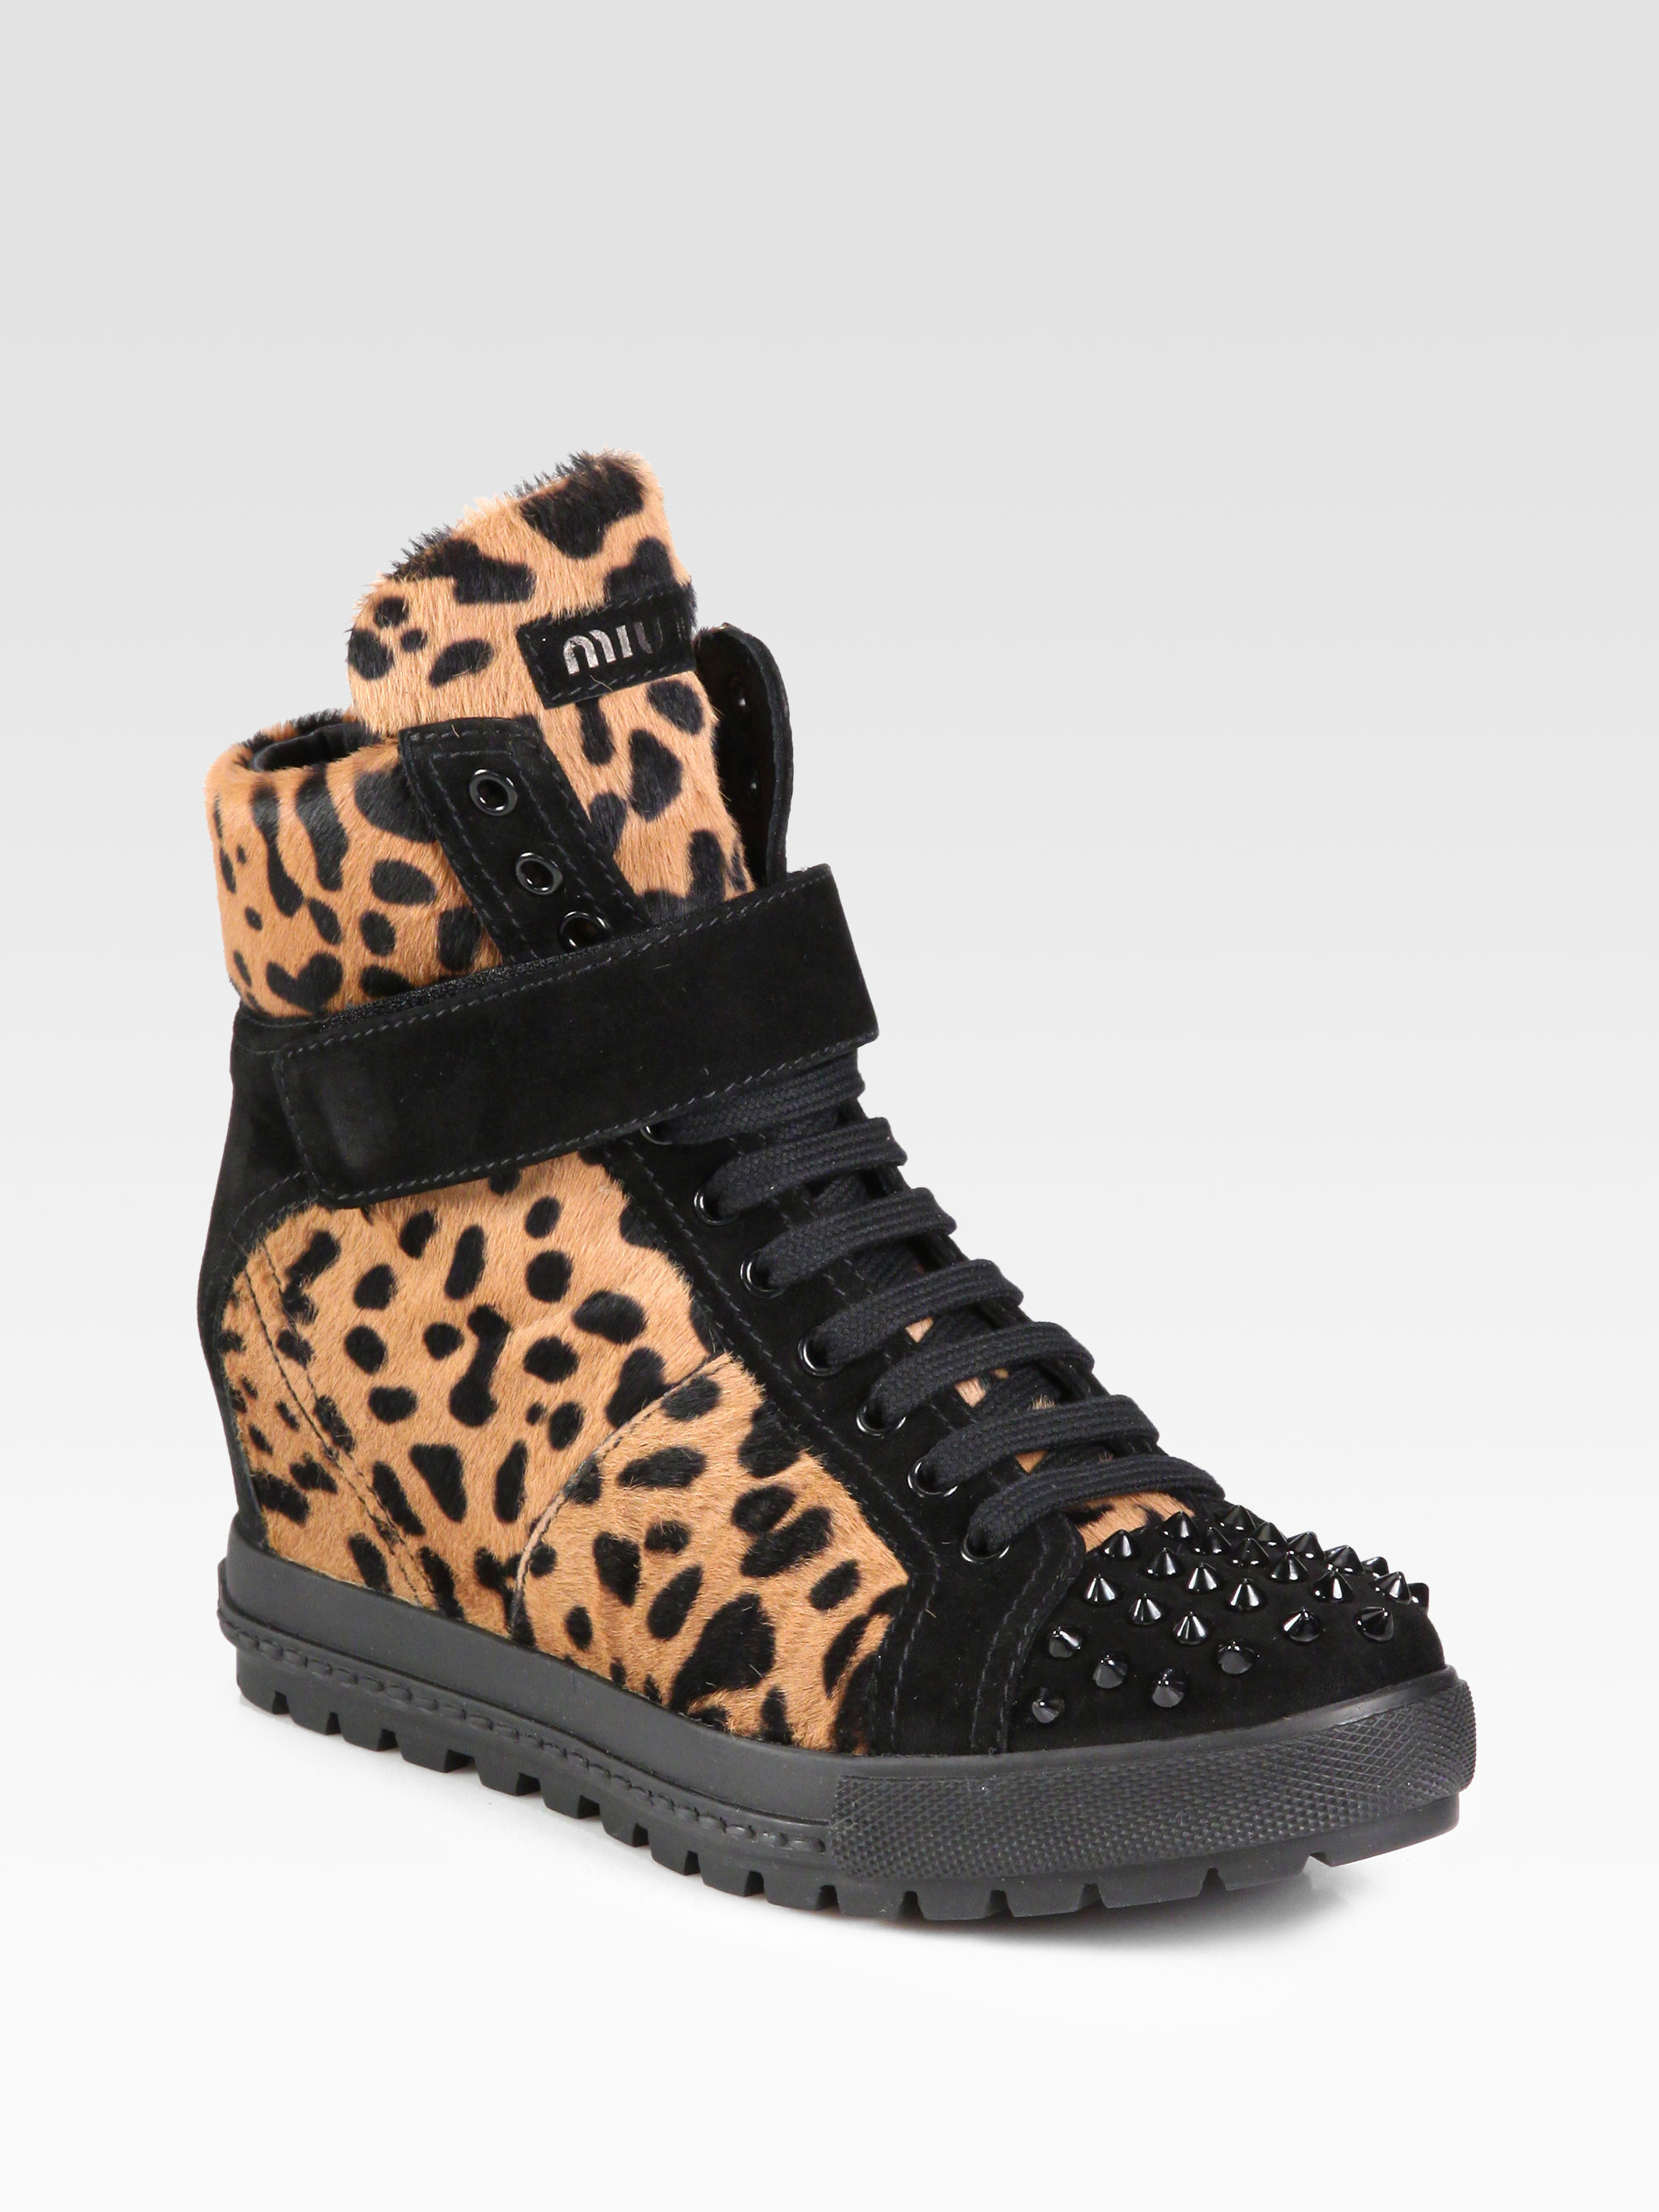 miu miu calf hair and studded suede wedge sneakers in black leopard lyst. Black Bedroom Furniture Sets. Home Design Ideas